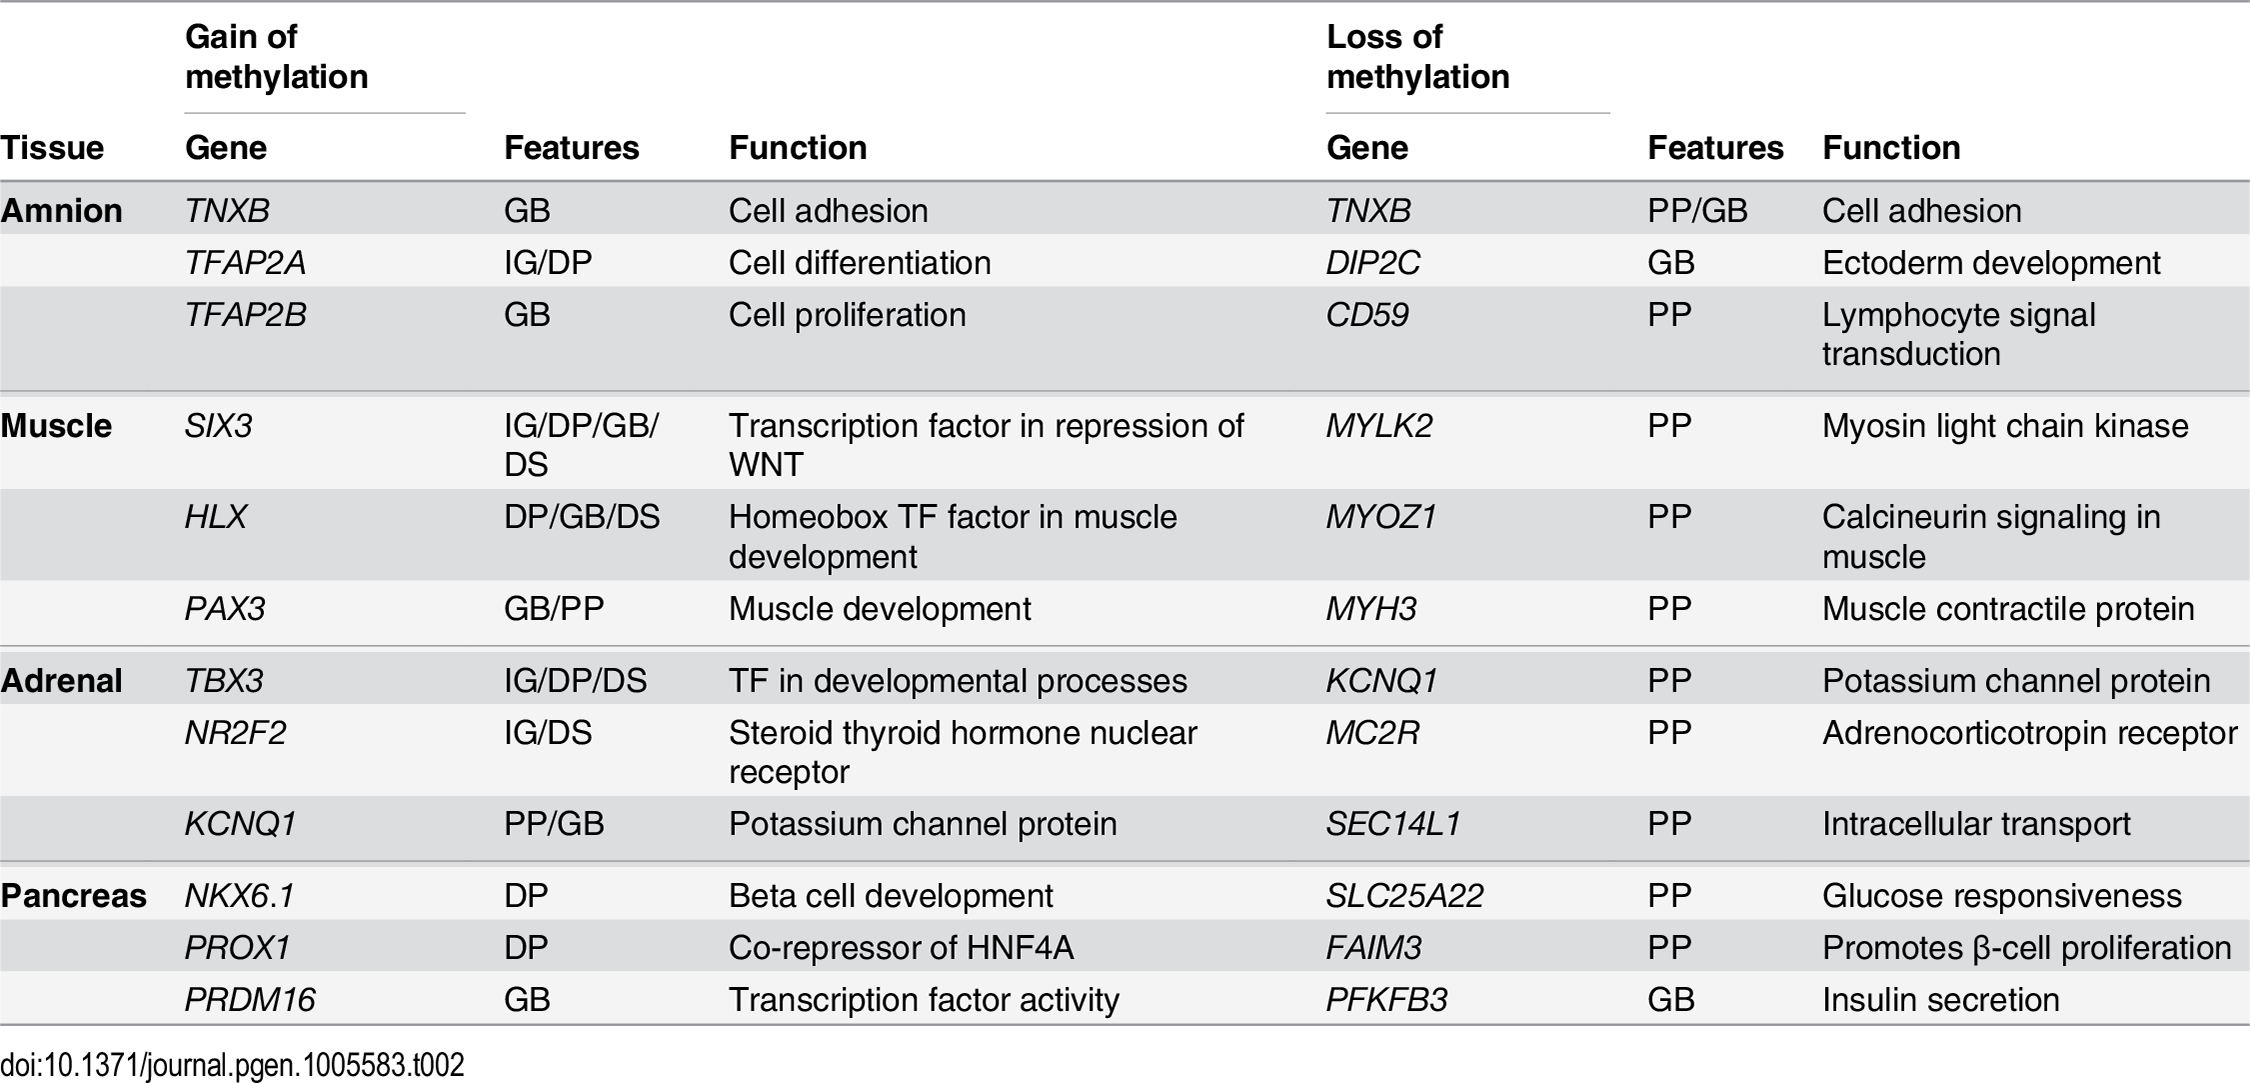 Table with six genes per tissue highlighting the tissue specificity of the genes found near dDMRs with a loss of methylation as well as the association of dDMRs with a gain of methylation with tissue-specific developmental genes.